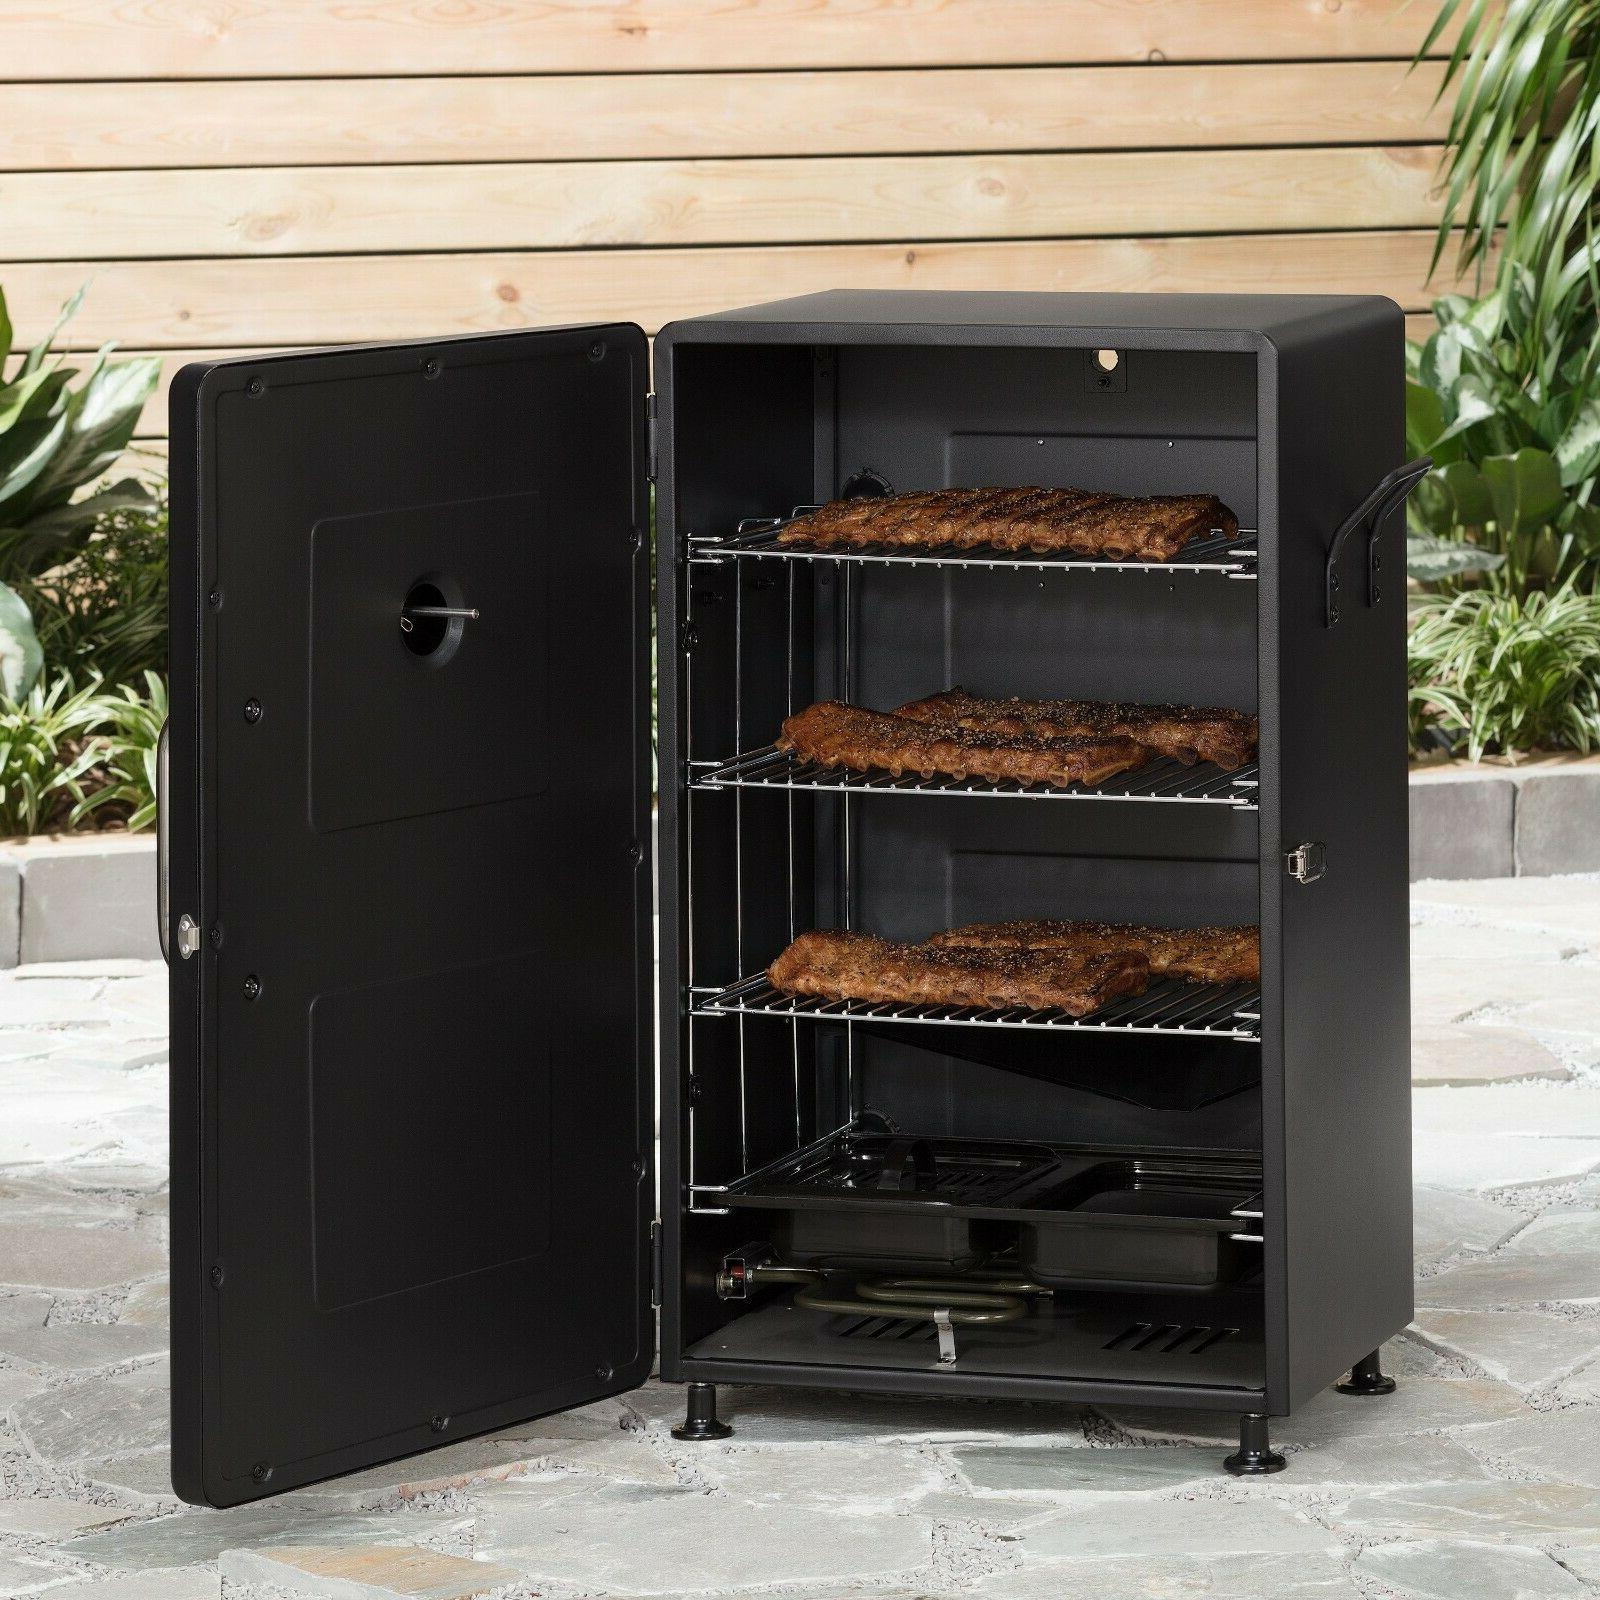 new electric bbq smoker barbecue grill outdoor